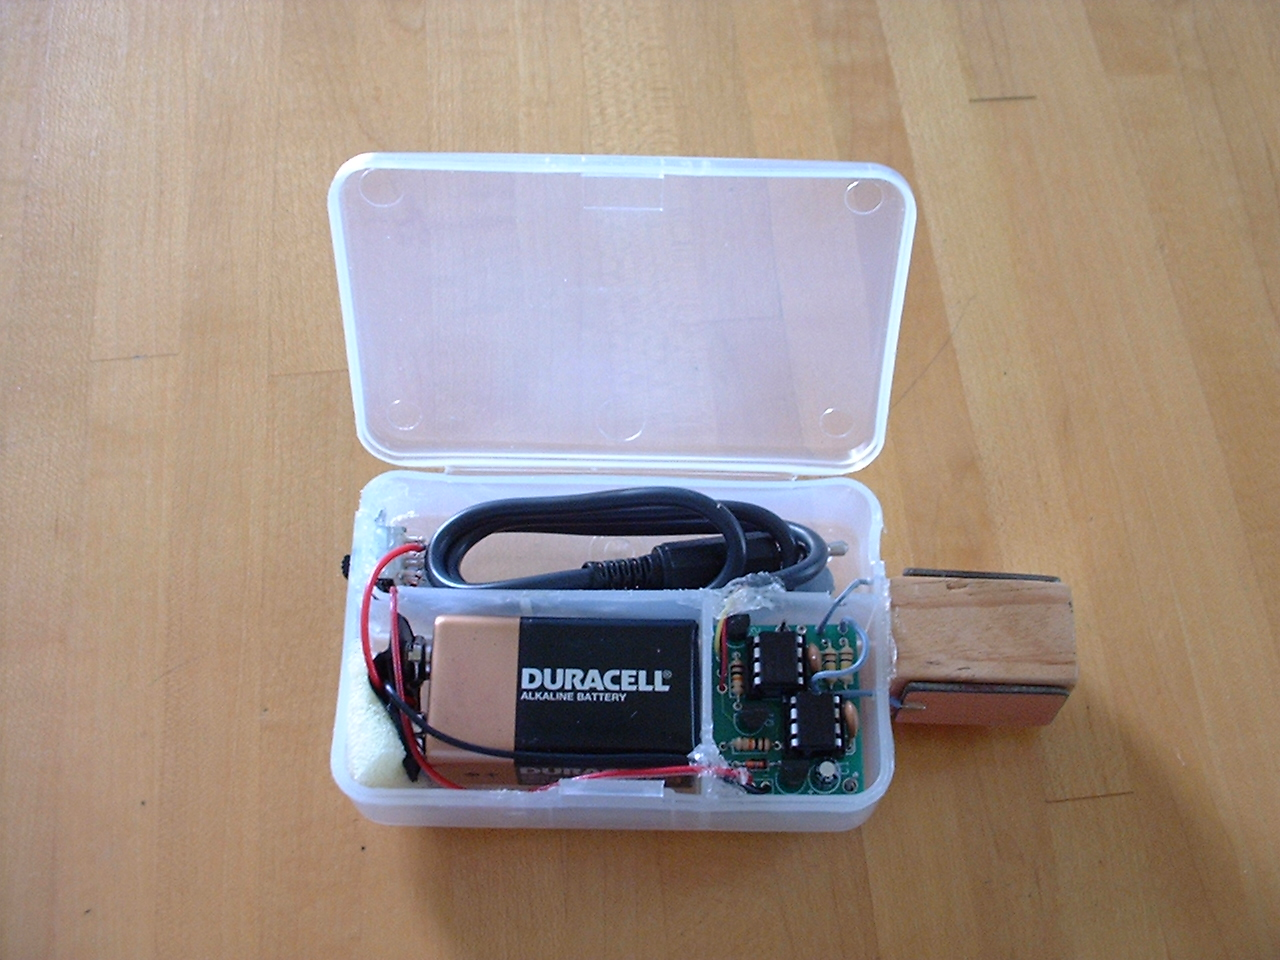 Keys Paddles And Keyers Simple Electronic Keyer Ive Never Tried A Touch Paddle So I Ordered The Kit From Cwtouchkeyercom Built Up Little Board Then Packaged It In Box Found At